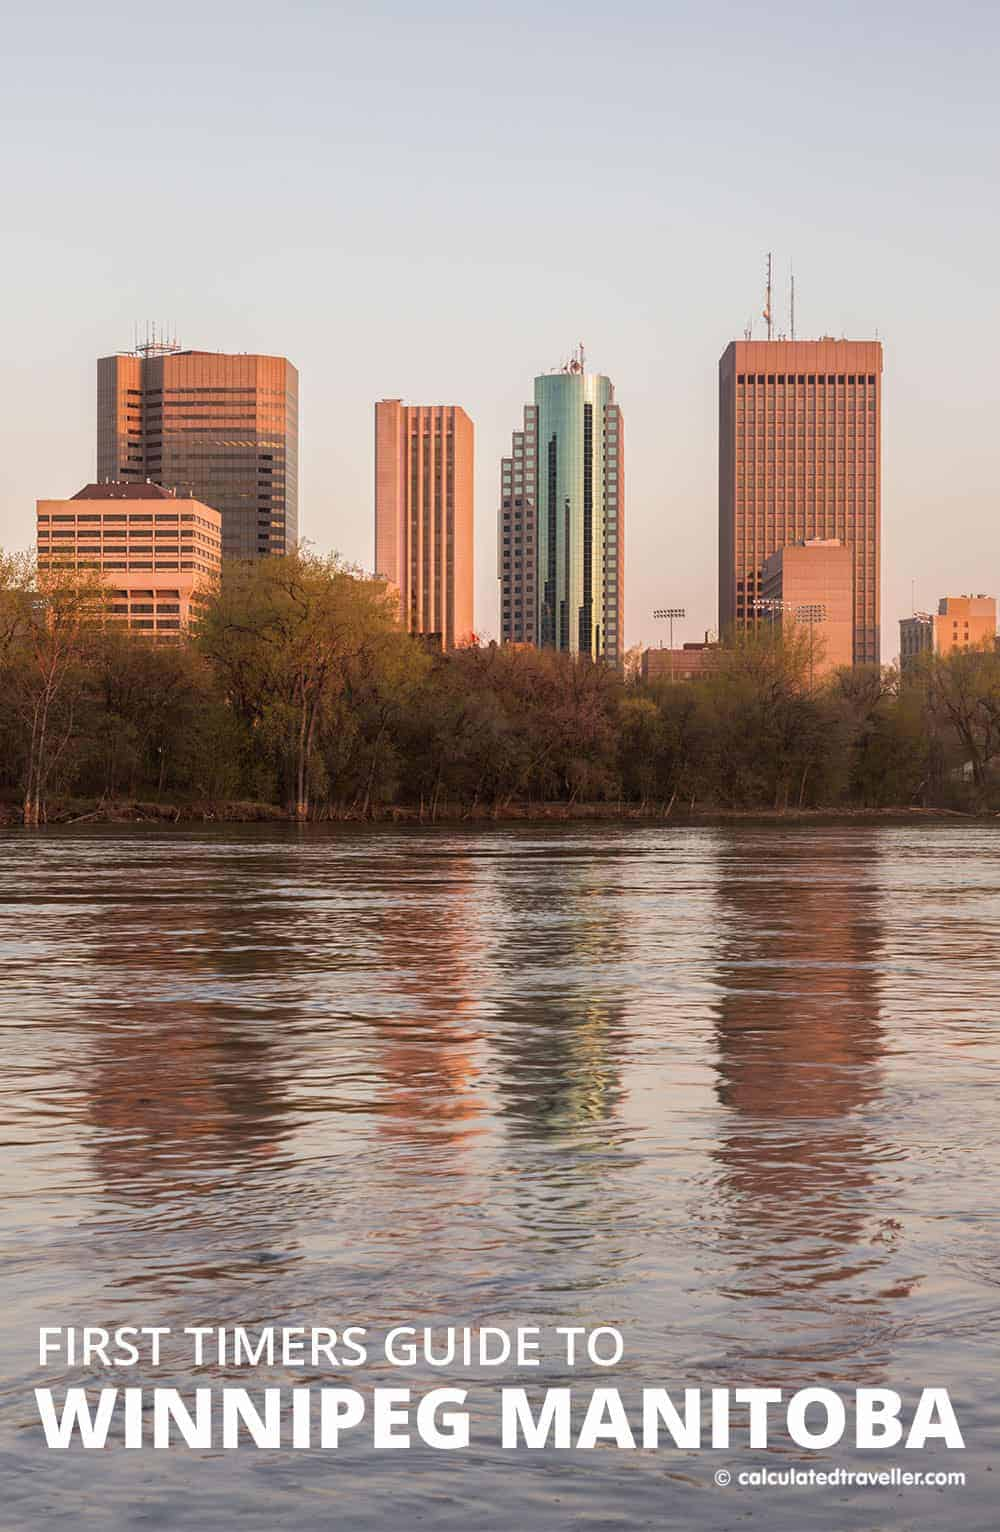 Experiencing Winnipeg Manitoba for the First Time by Calculated Traveller Magazine | #Winnipeg #Manitoba #Canada #travel